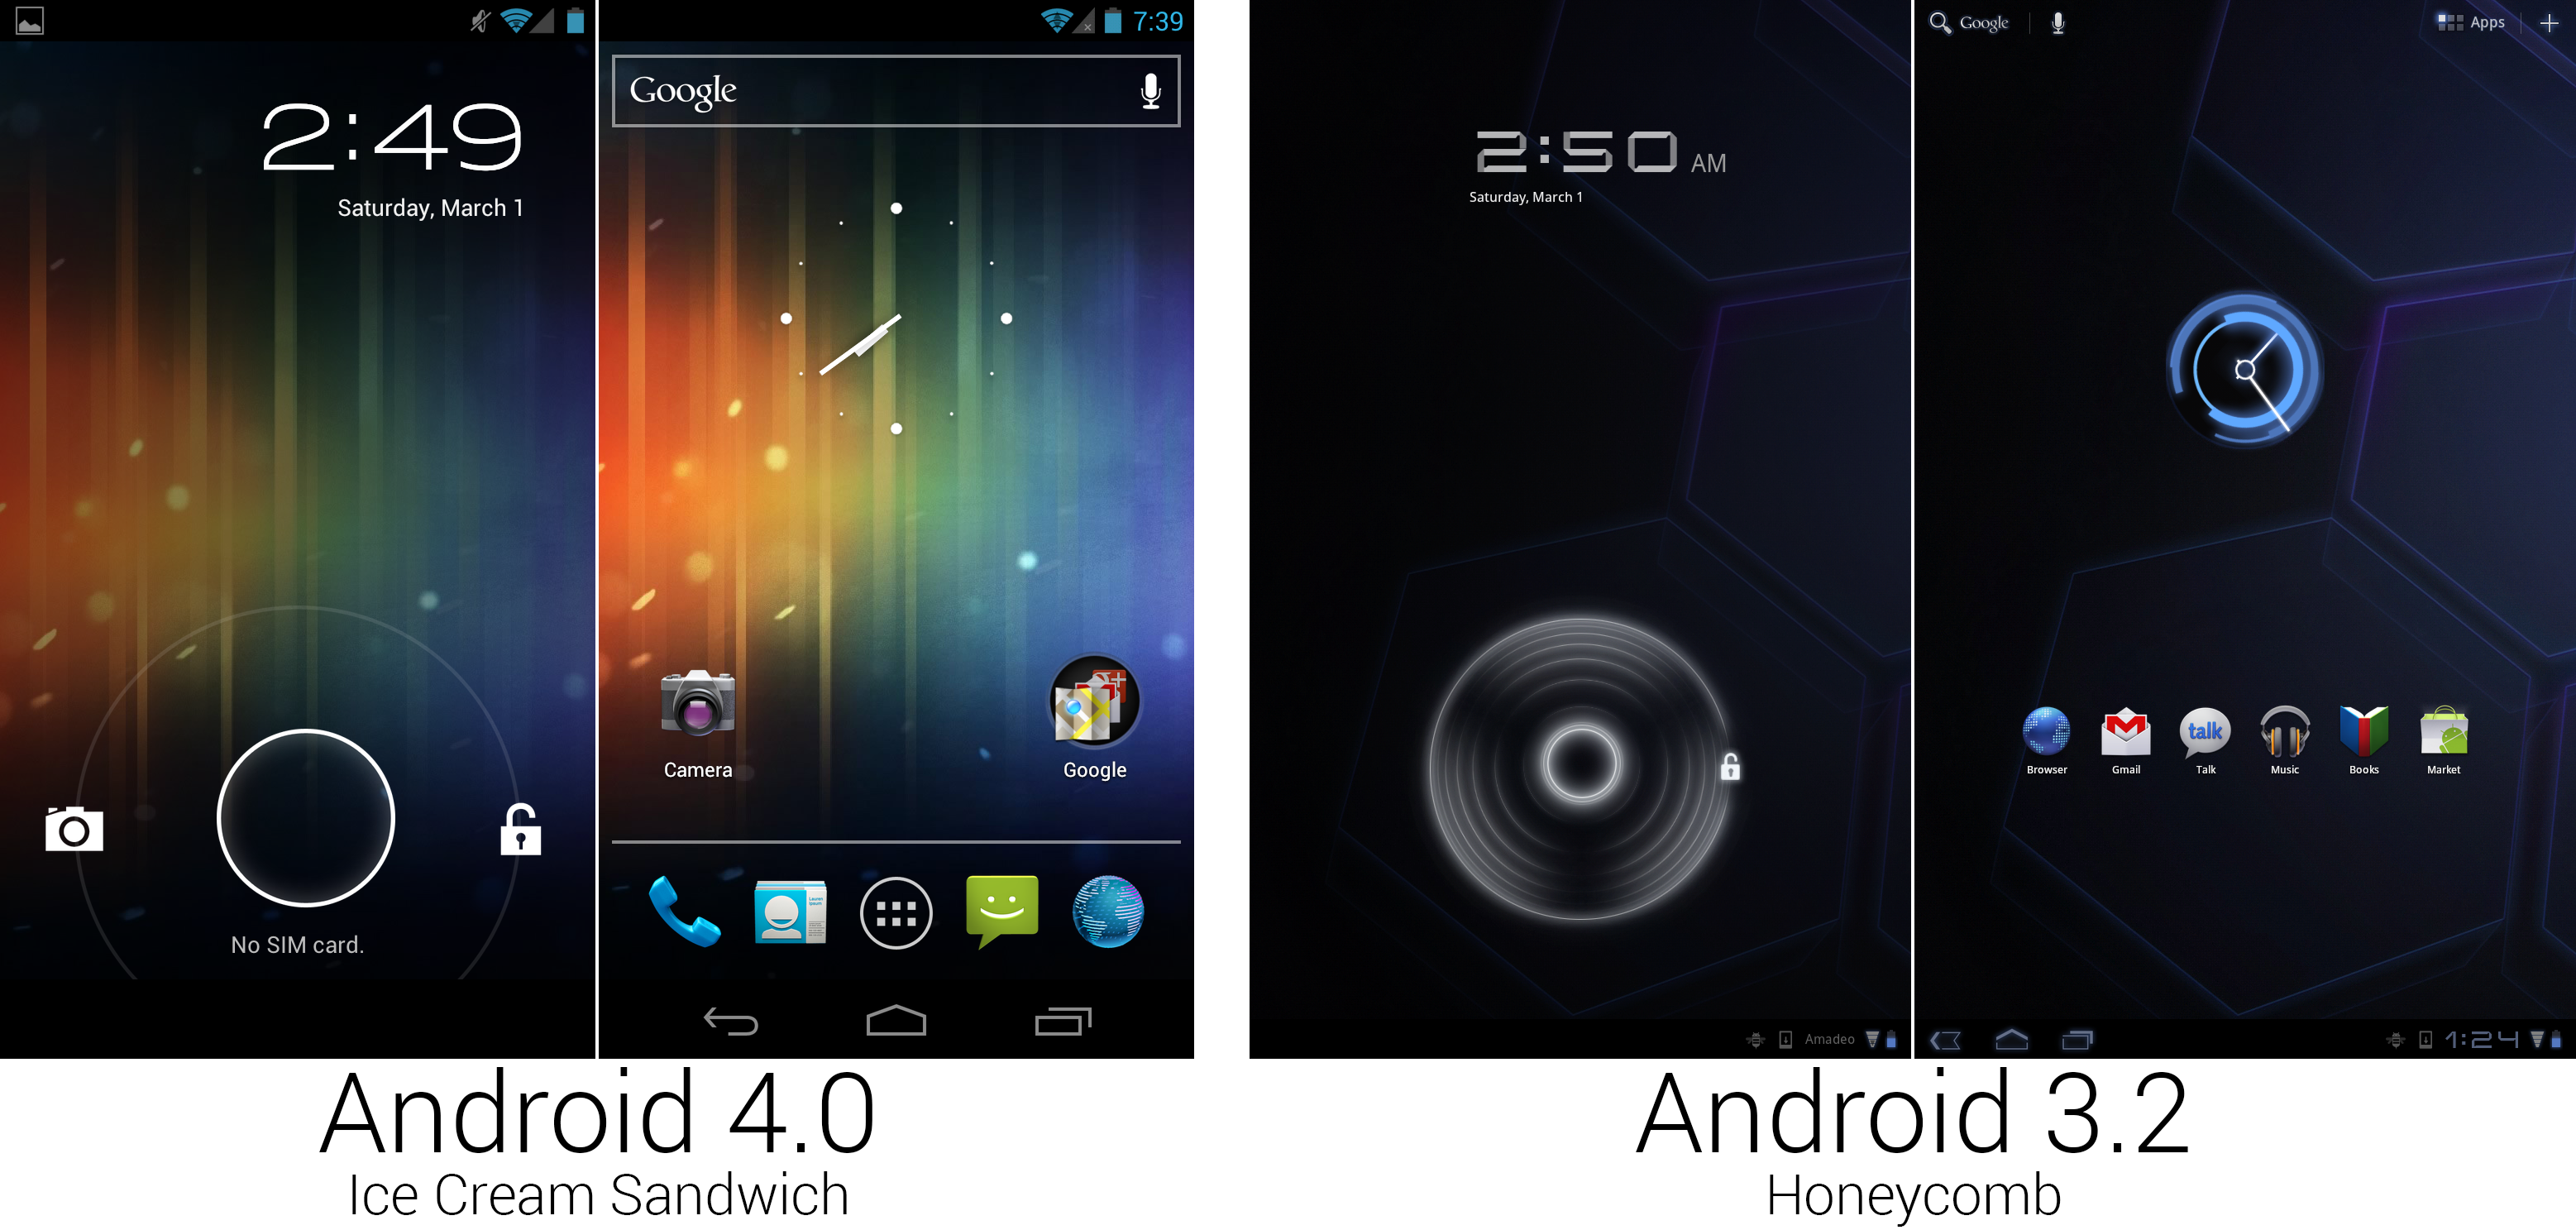 Android 4.0 shrunk down a lot of the Honeycomb design.